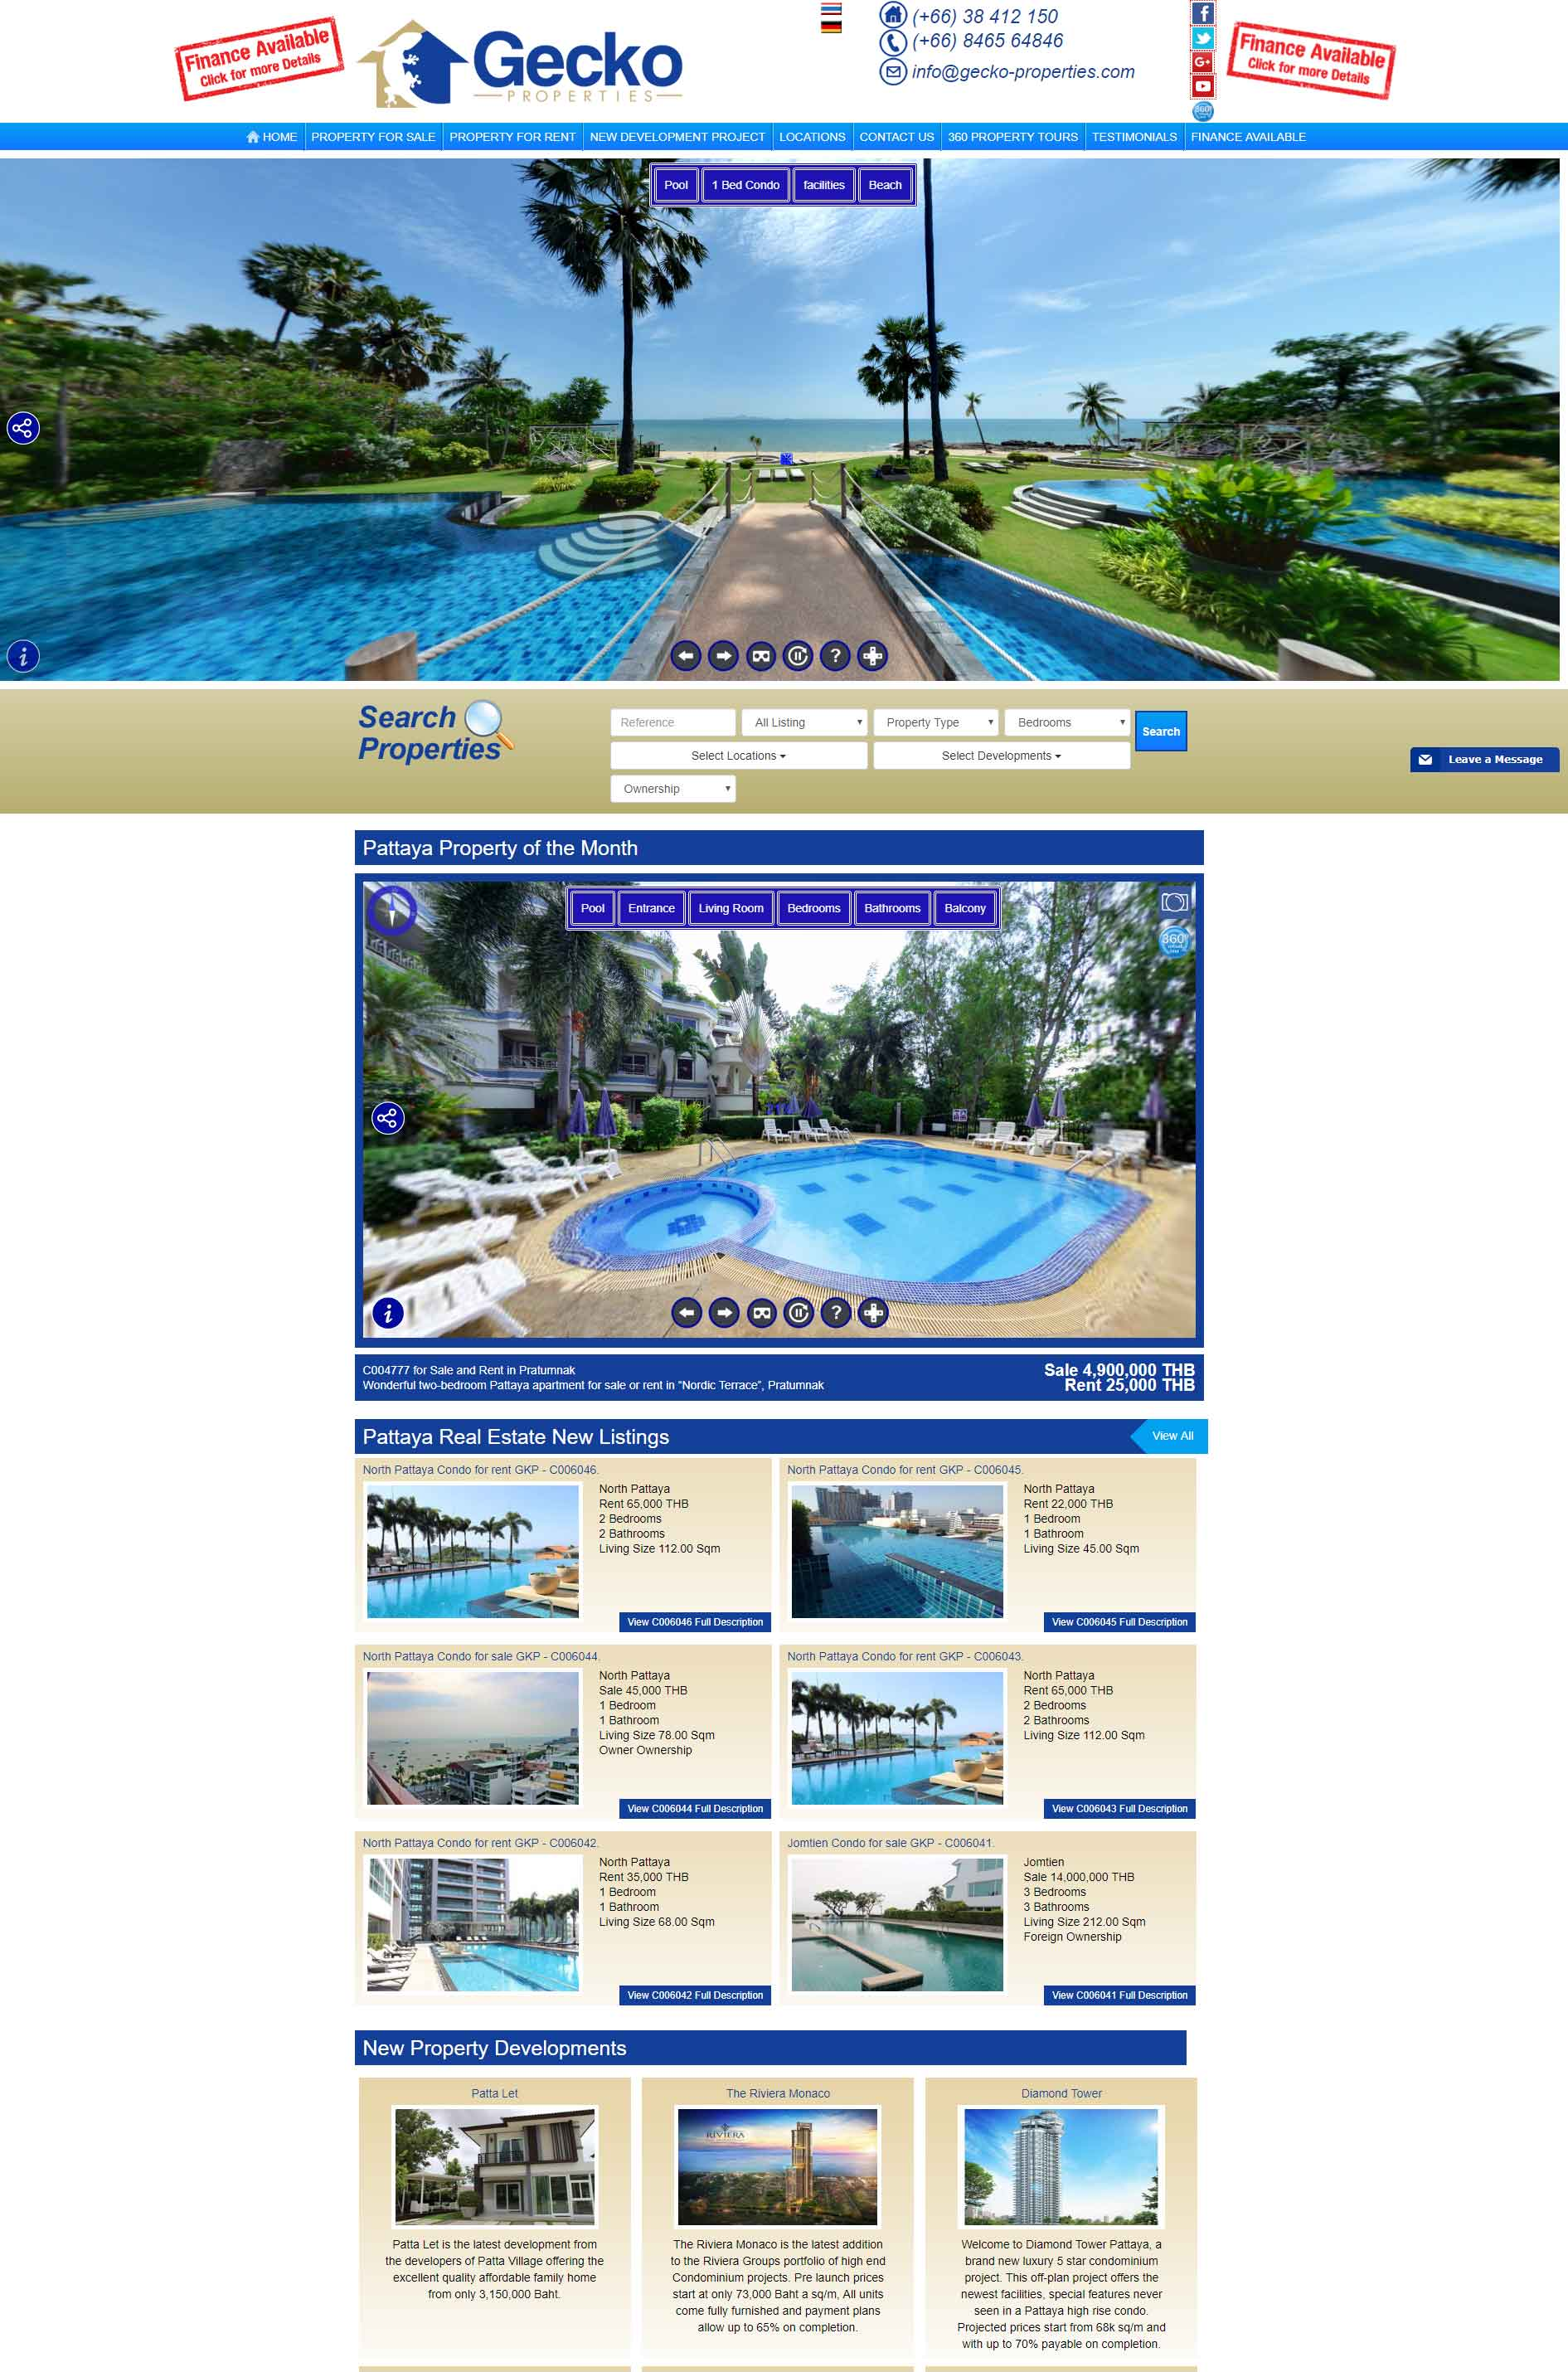 Gecko Properties Pattaya